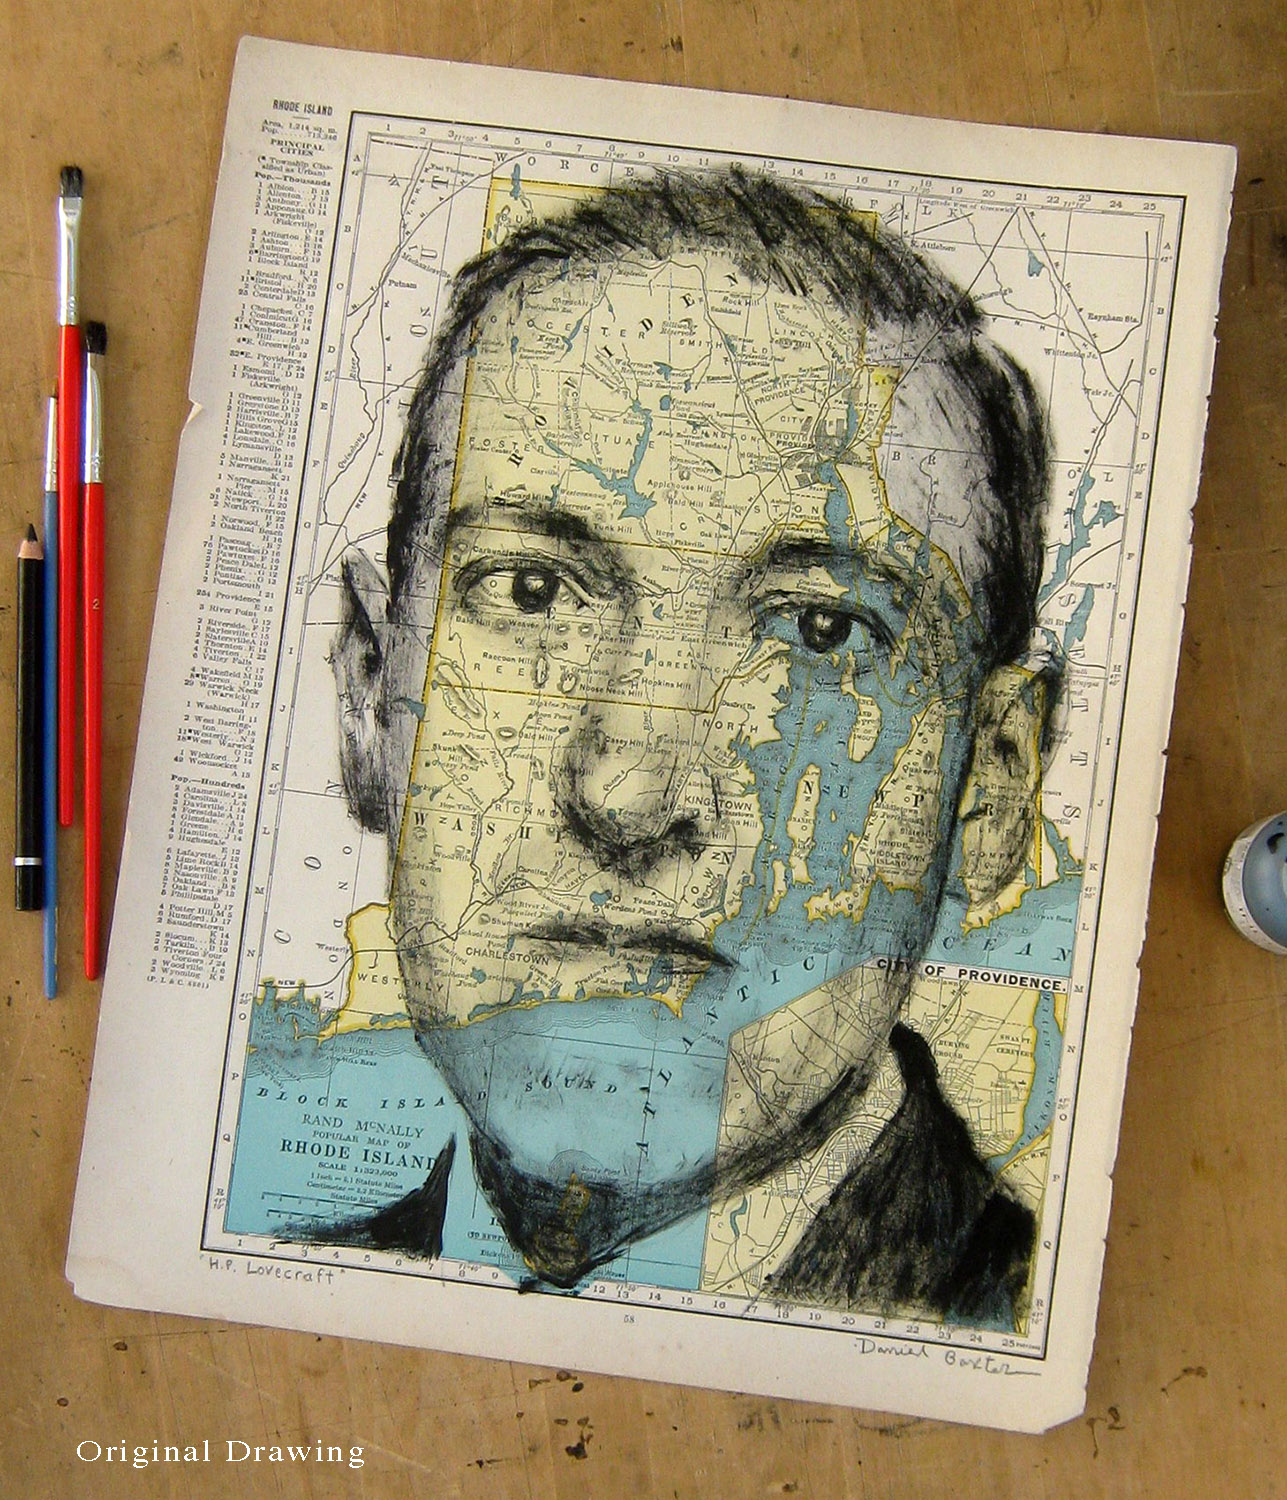 Daniel Baxter HP Lovecraft portrait photo.jpg